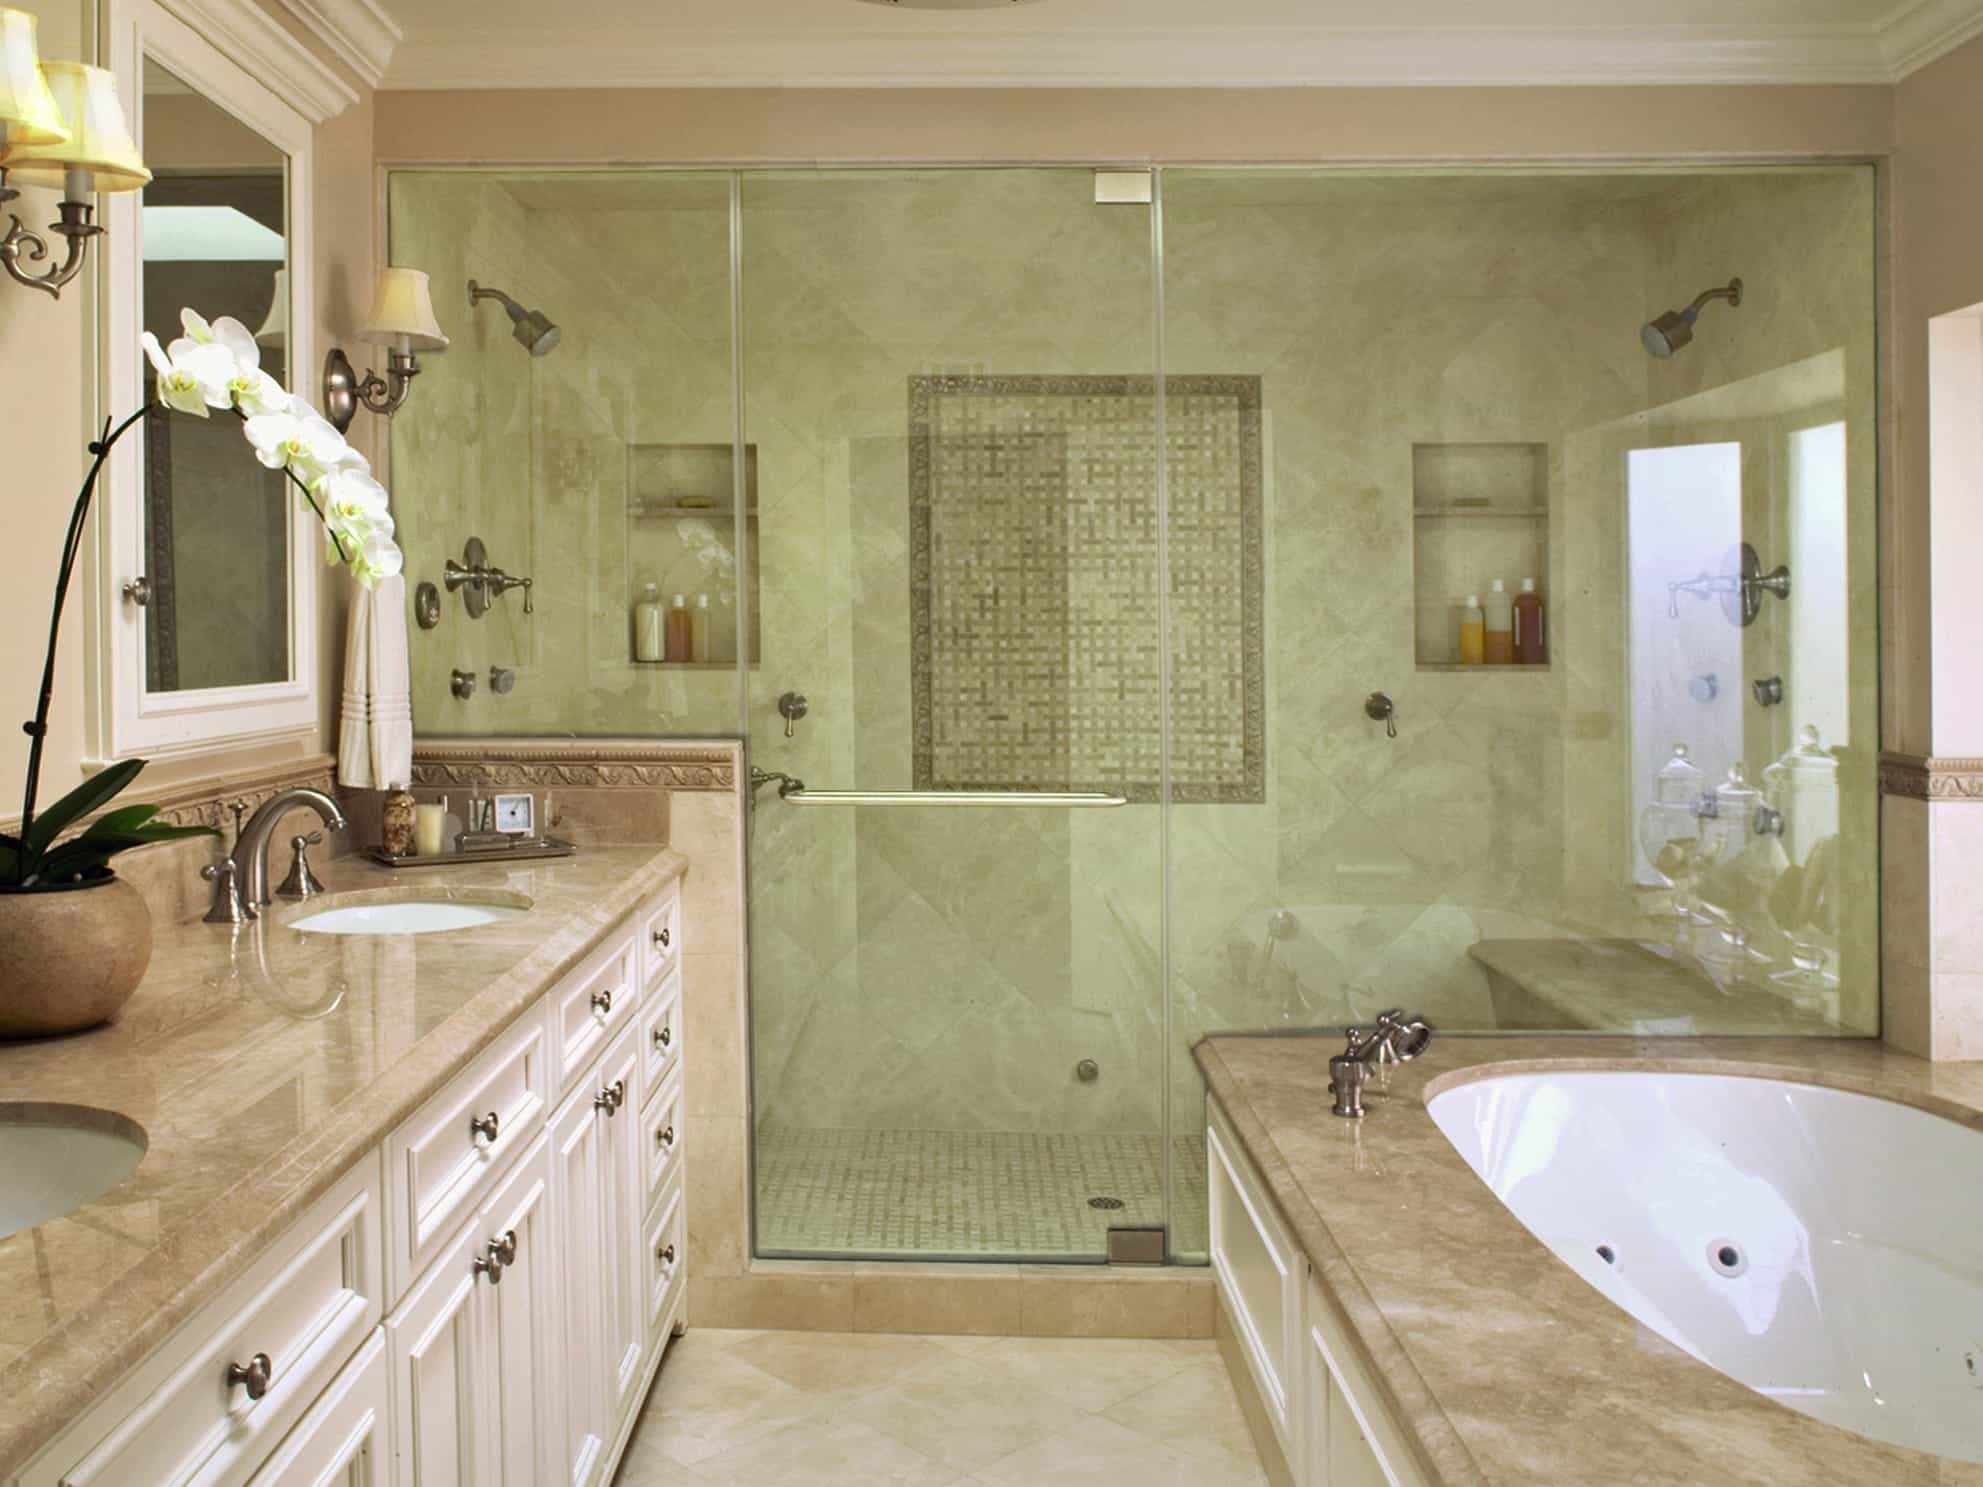 Classic Bathroom Interior Design With Soft Green Color Theme (Image 4 of 12)